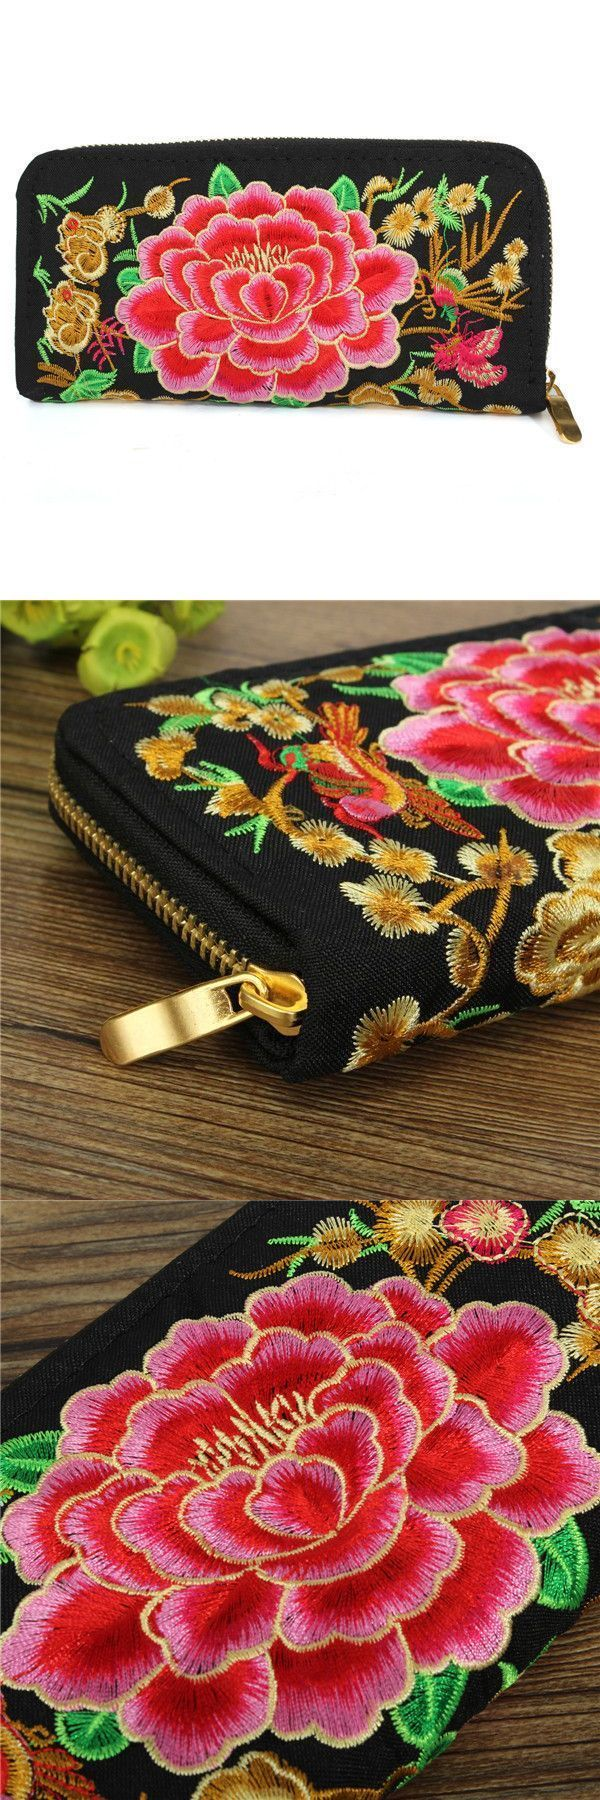 Women cotton tribe embroidered peony long wallet vintage flower purse clutches card holder class a wallets philippines #c #wonder #wallets #fallout #3 #wallets #halo #3 #wallets #k #london #wallets #wiki